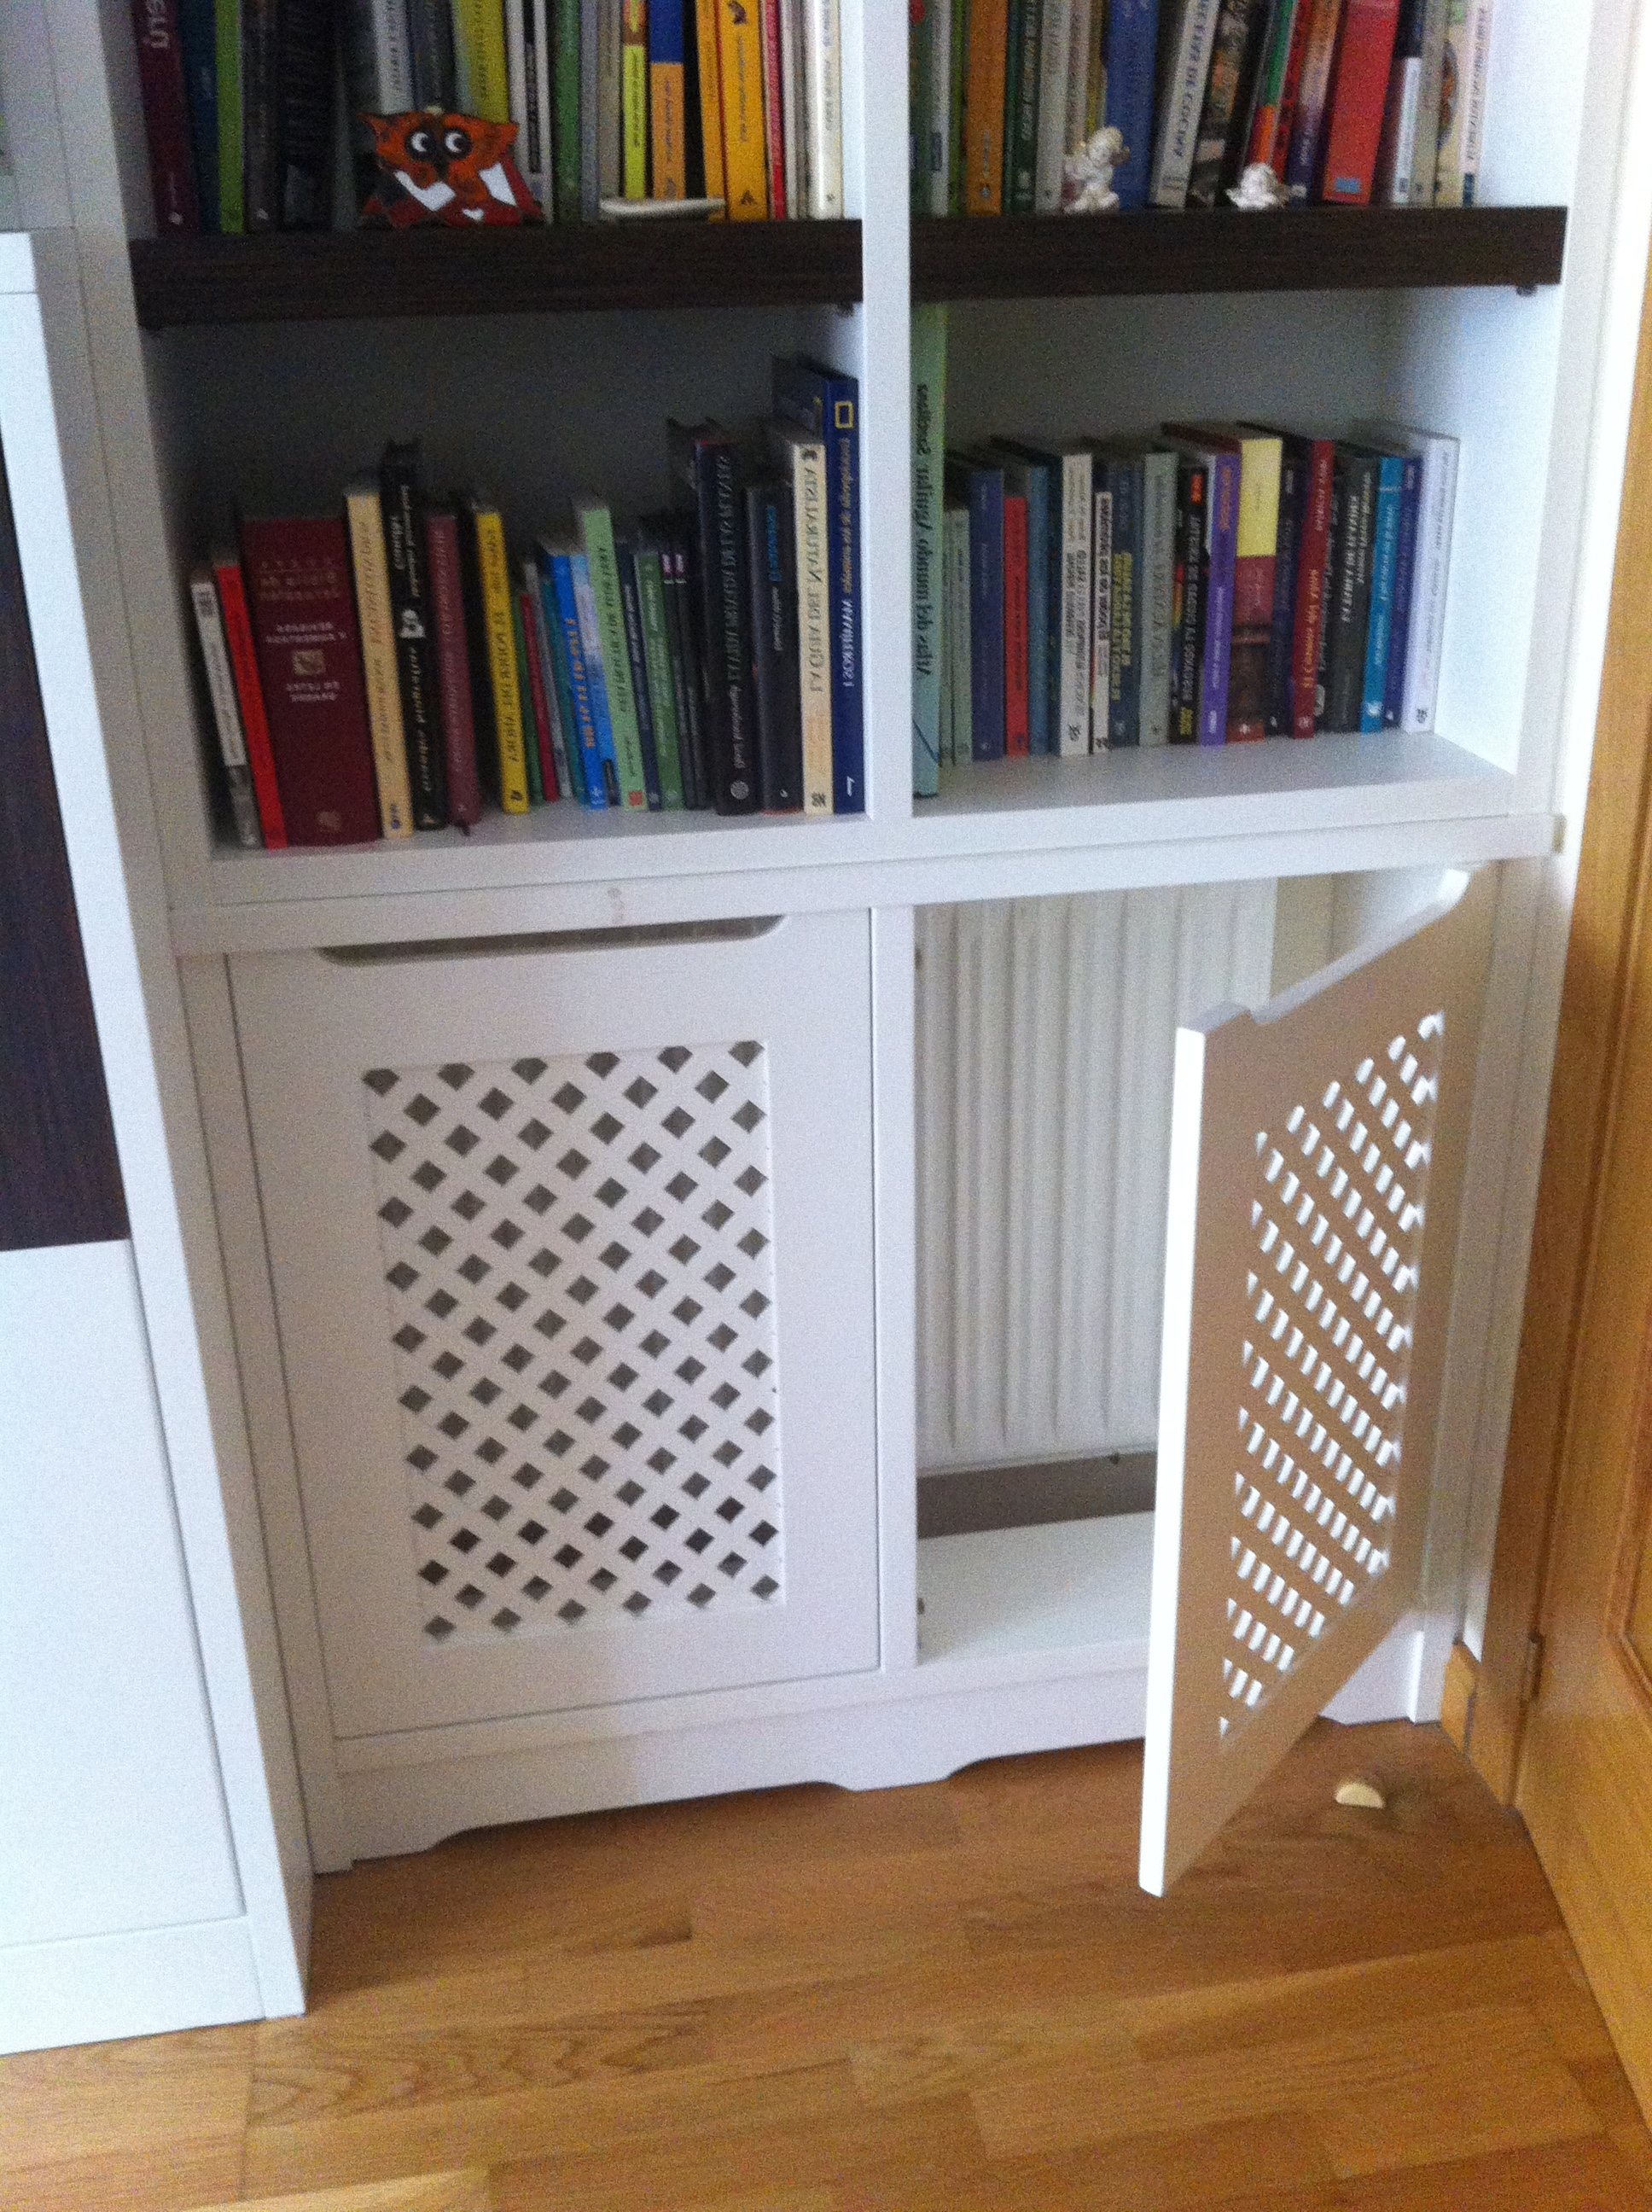 Obudowa Pertaining To Radiator Cover Bookshelves (View 10 of 15)